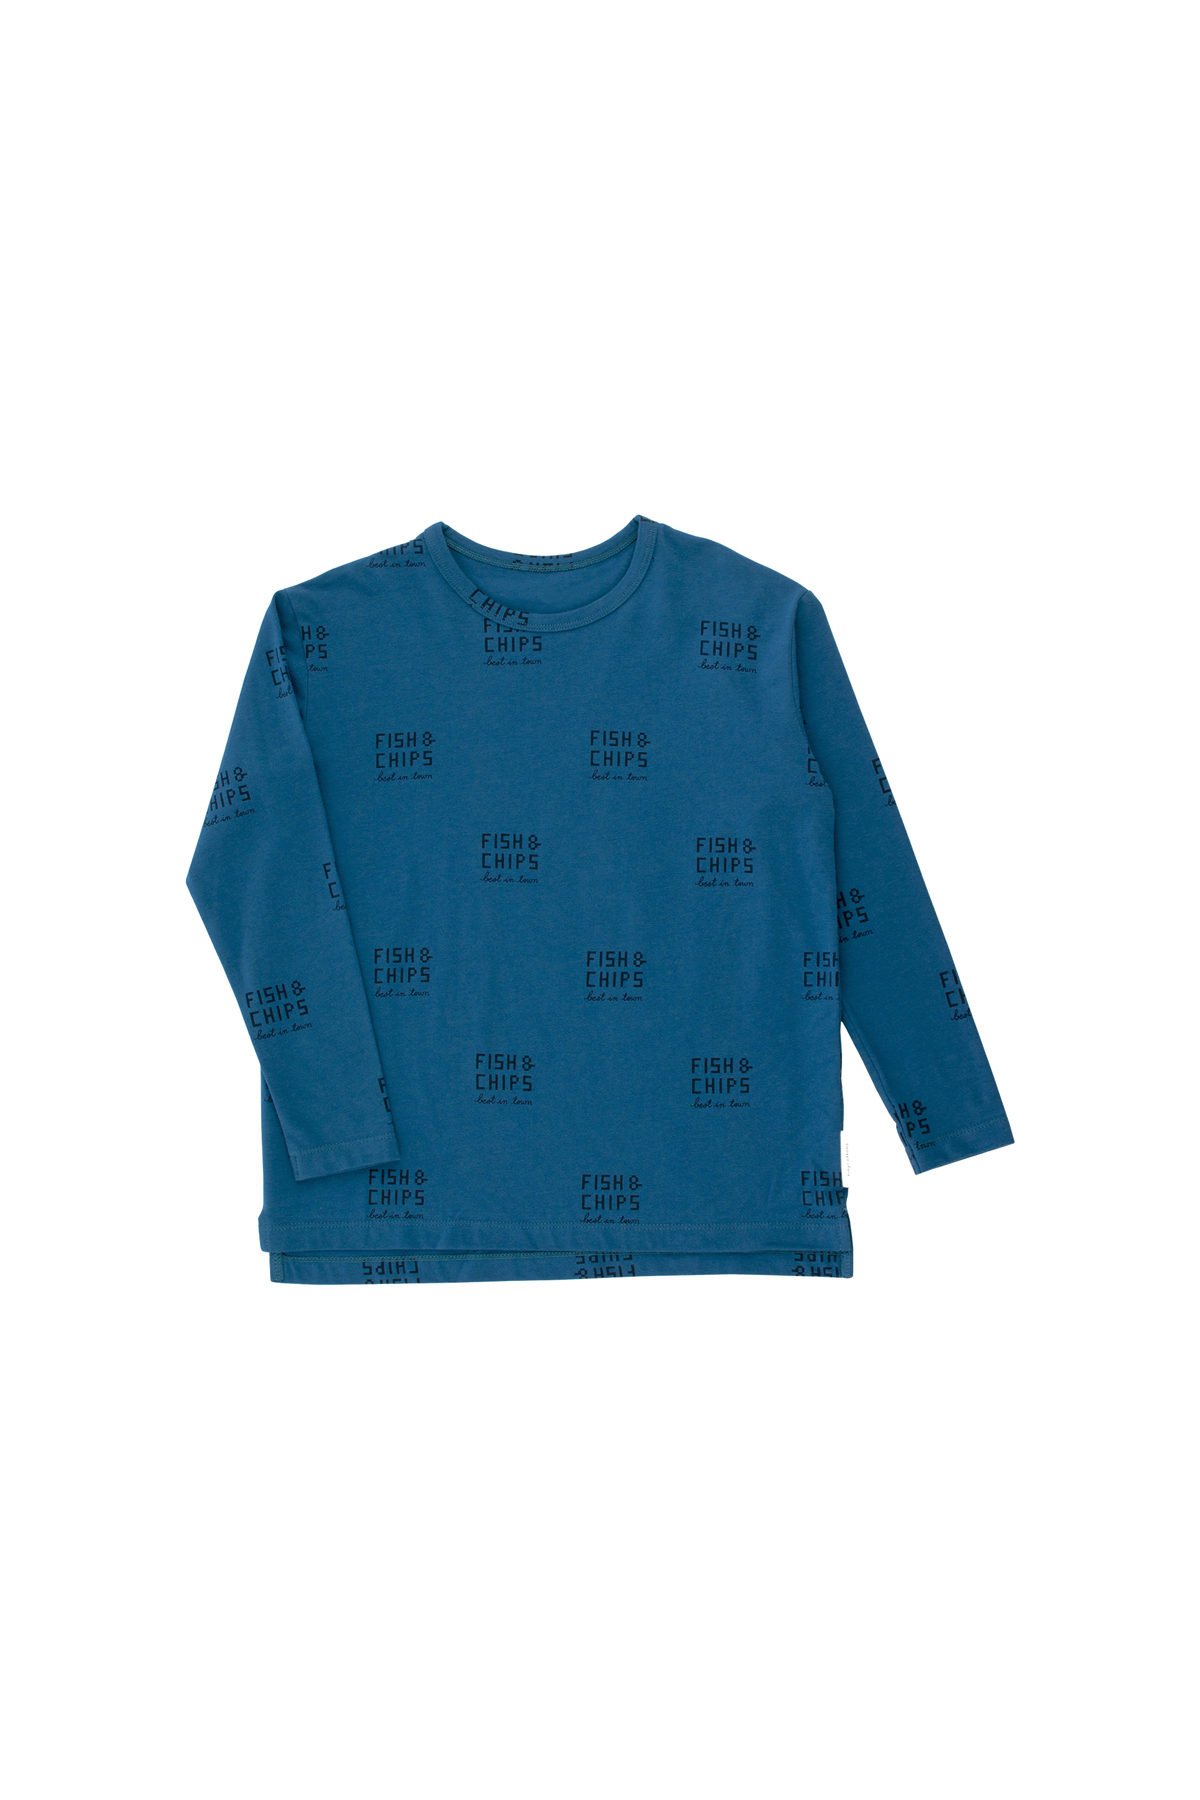 《tinycottons 2018AW》fish and chips ls relaxed tee / light navy × navy